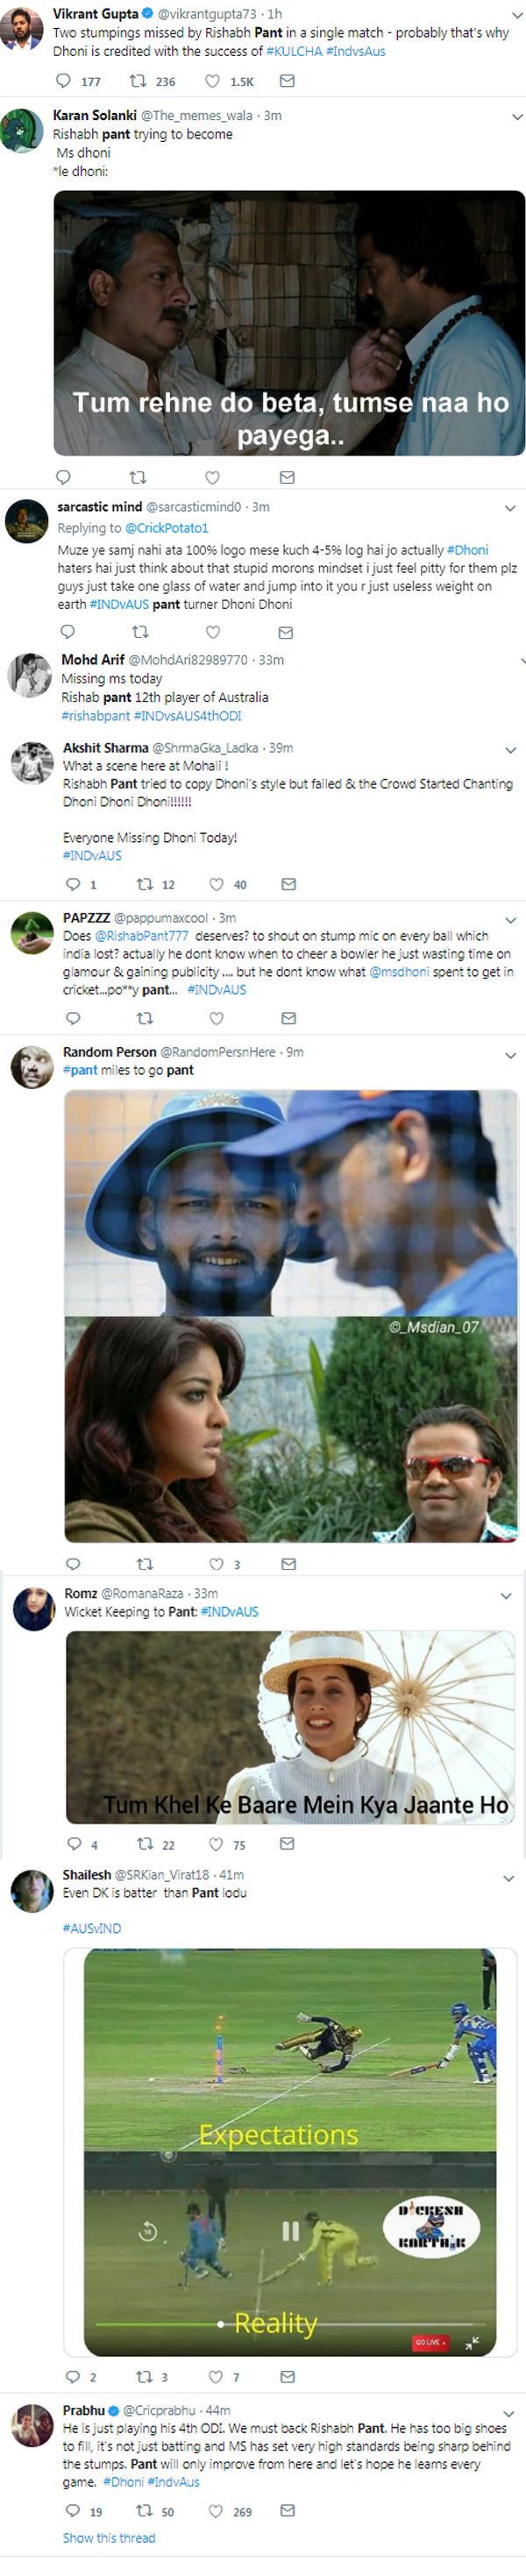 Rishabh pant got trolled again for missing Stumping